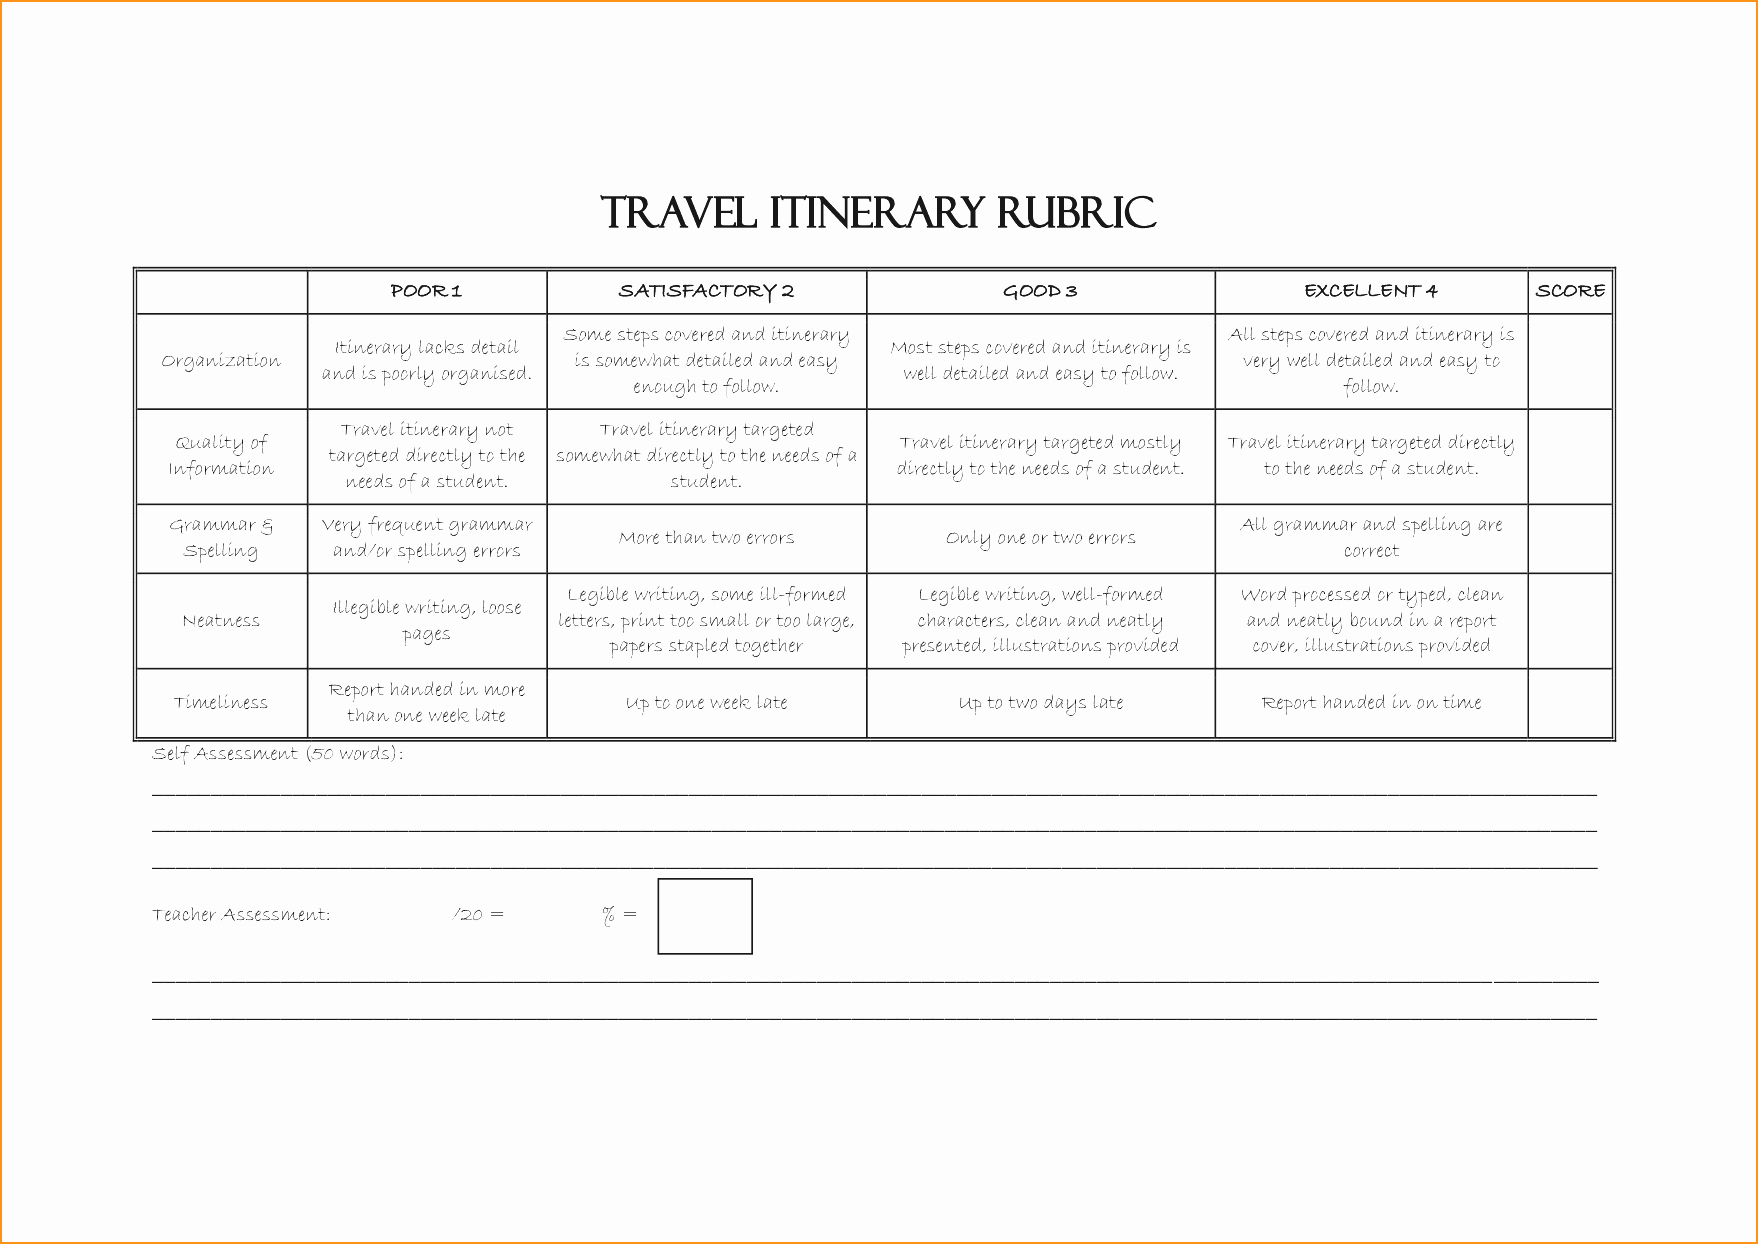 Travel Itinerary Template Word 2010 Luxury Agenda Template Microsoft Word Example Mughals